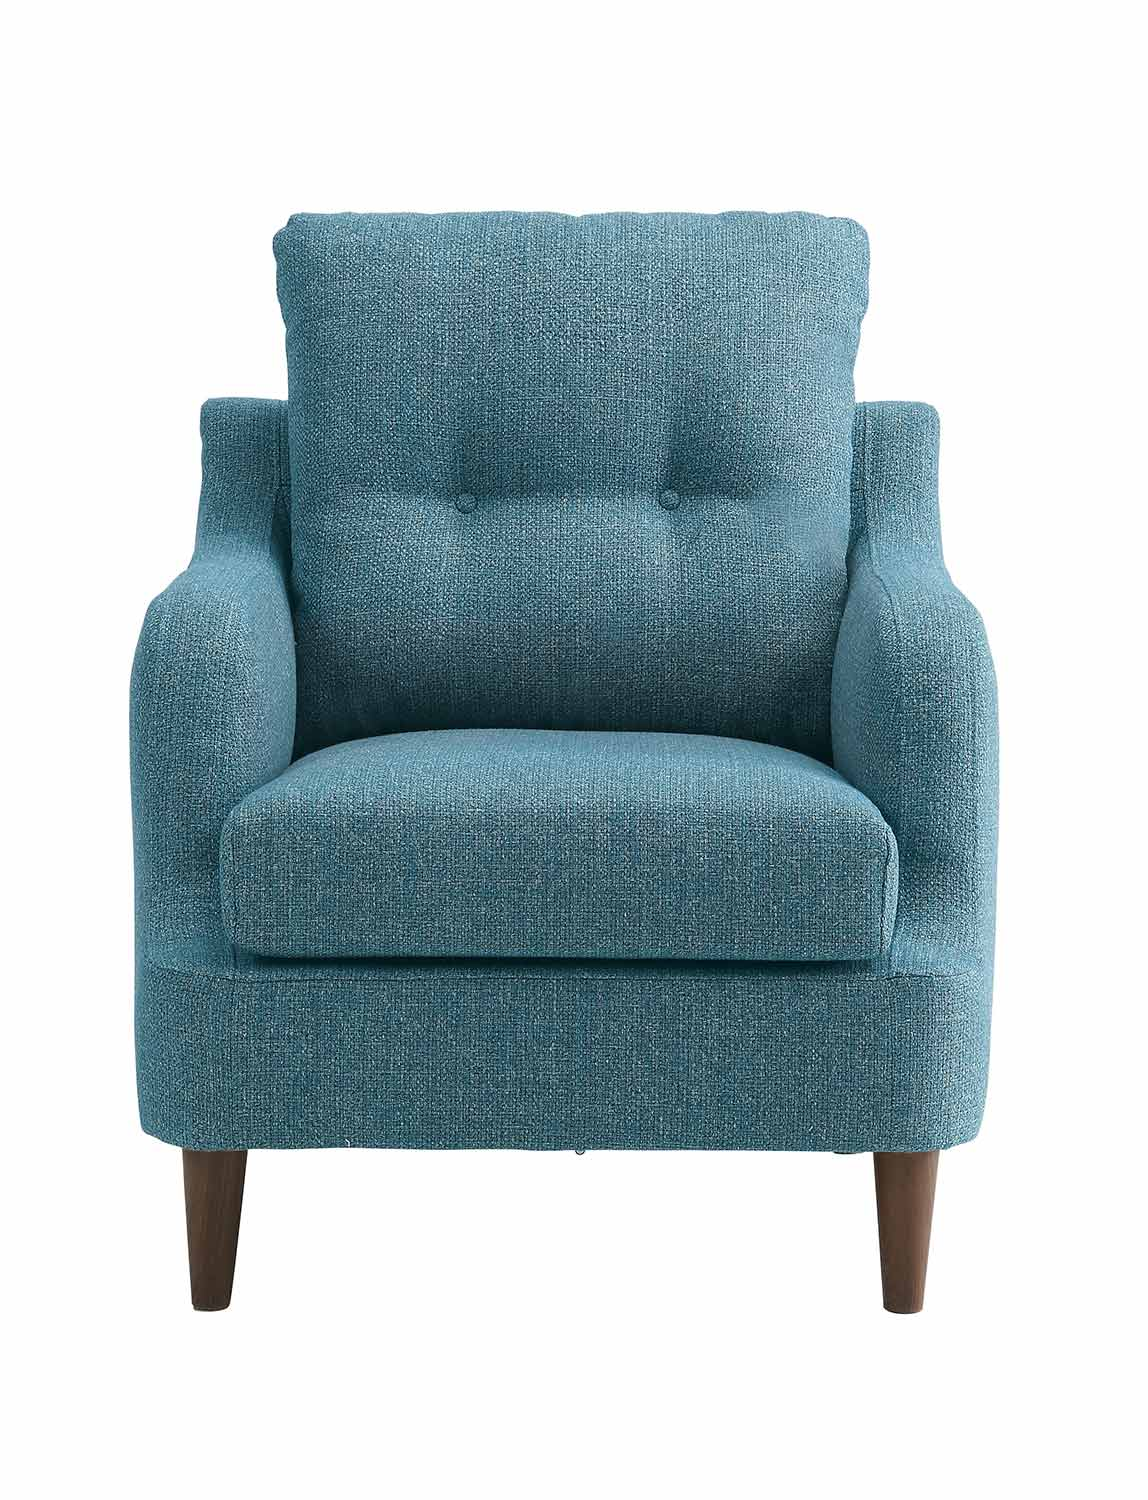 Homelegance Cagle Accent Chair - Blue